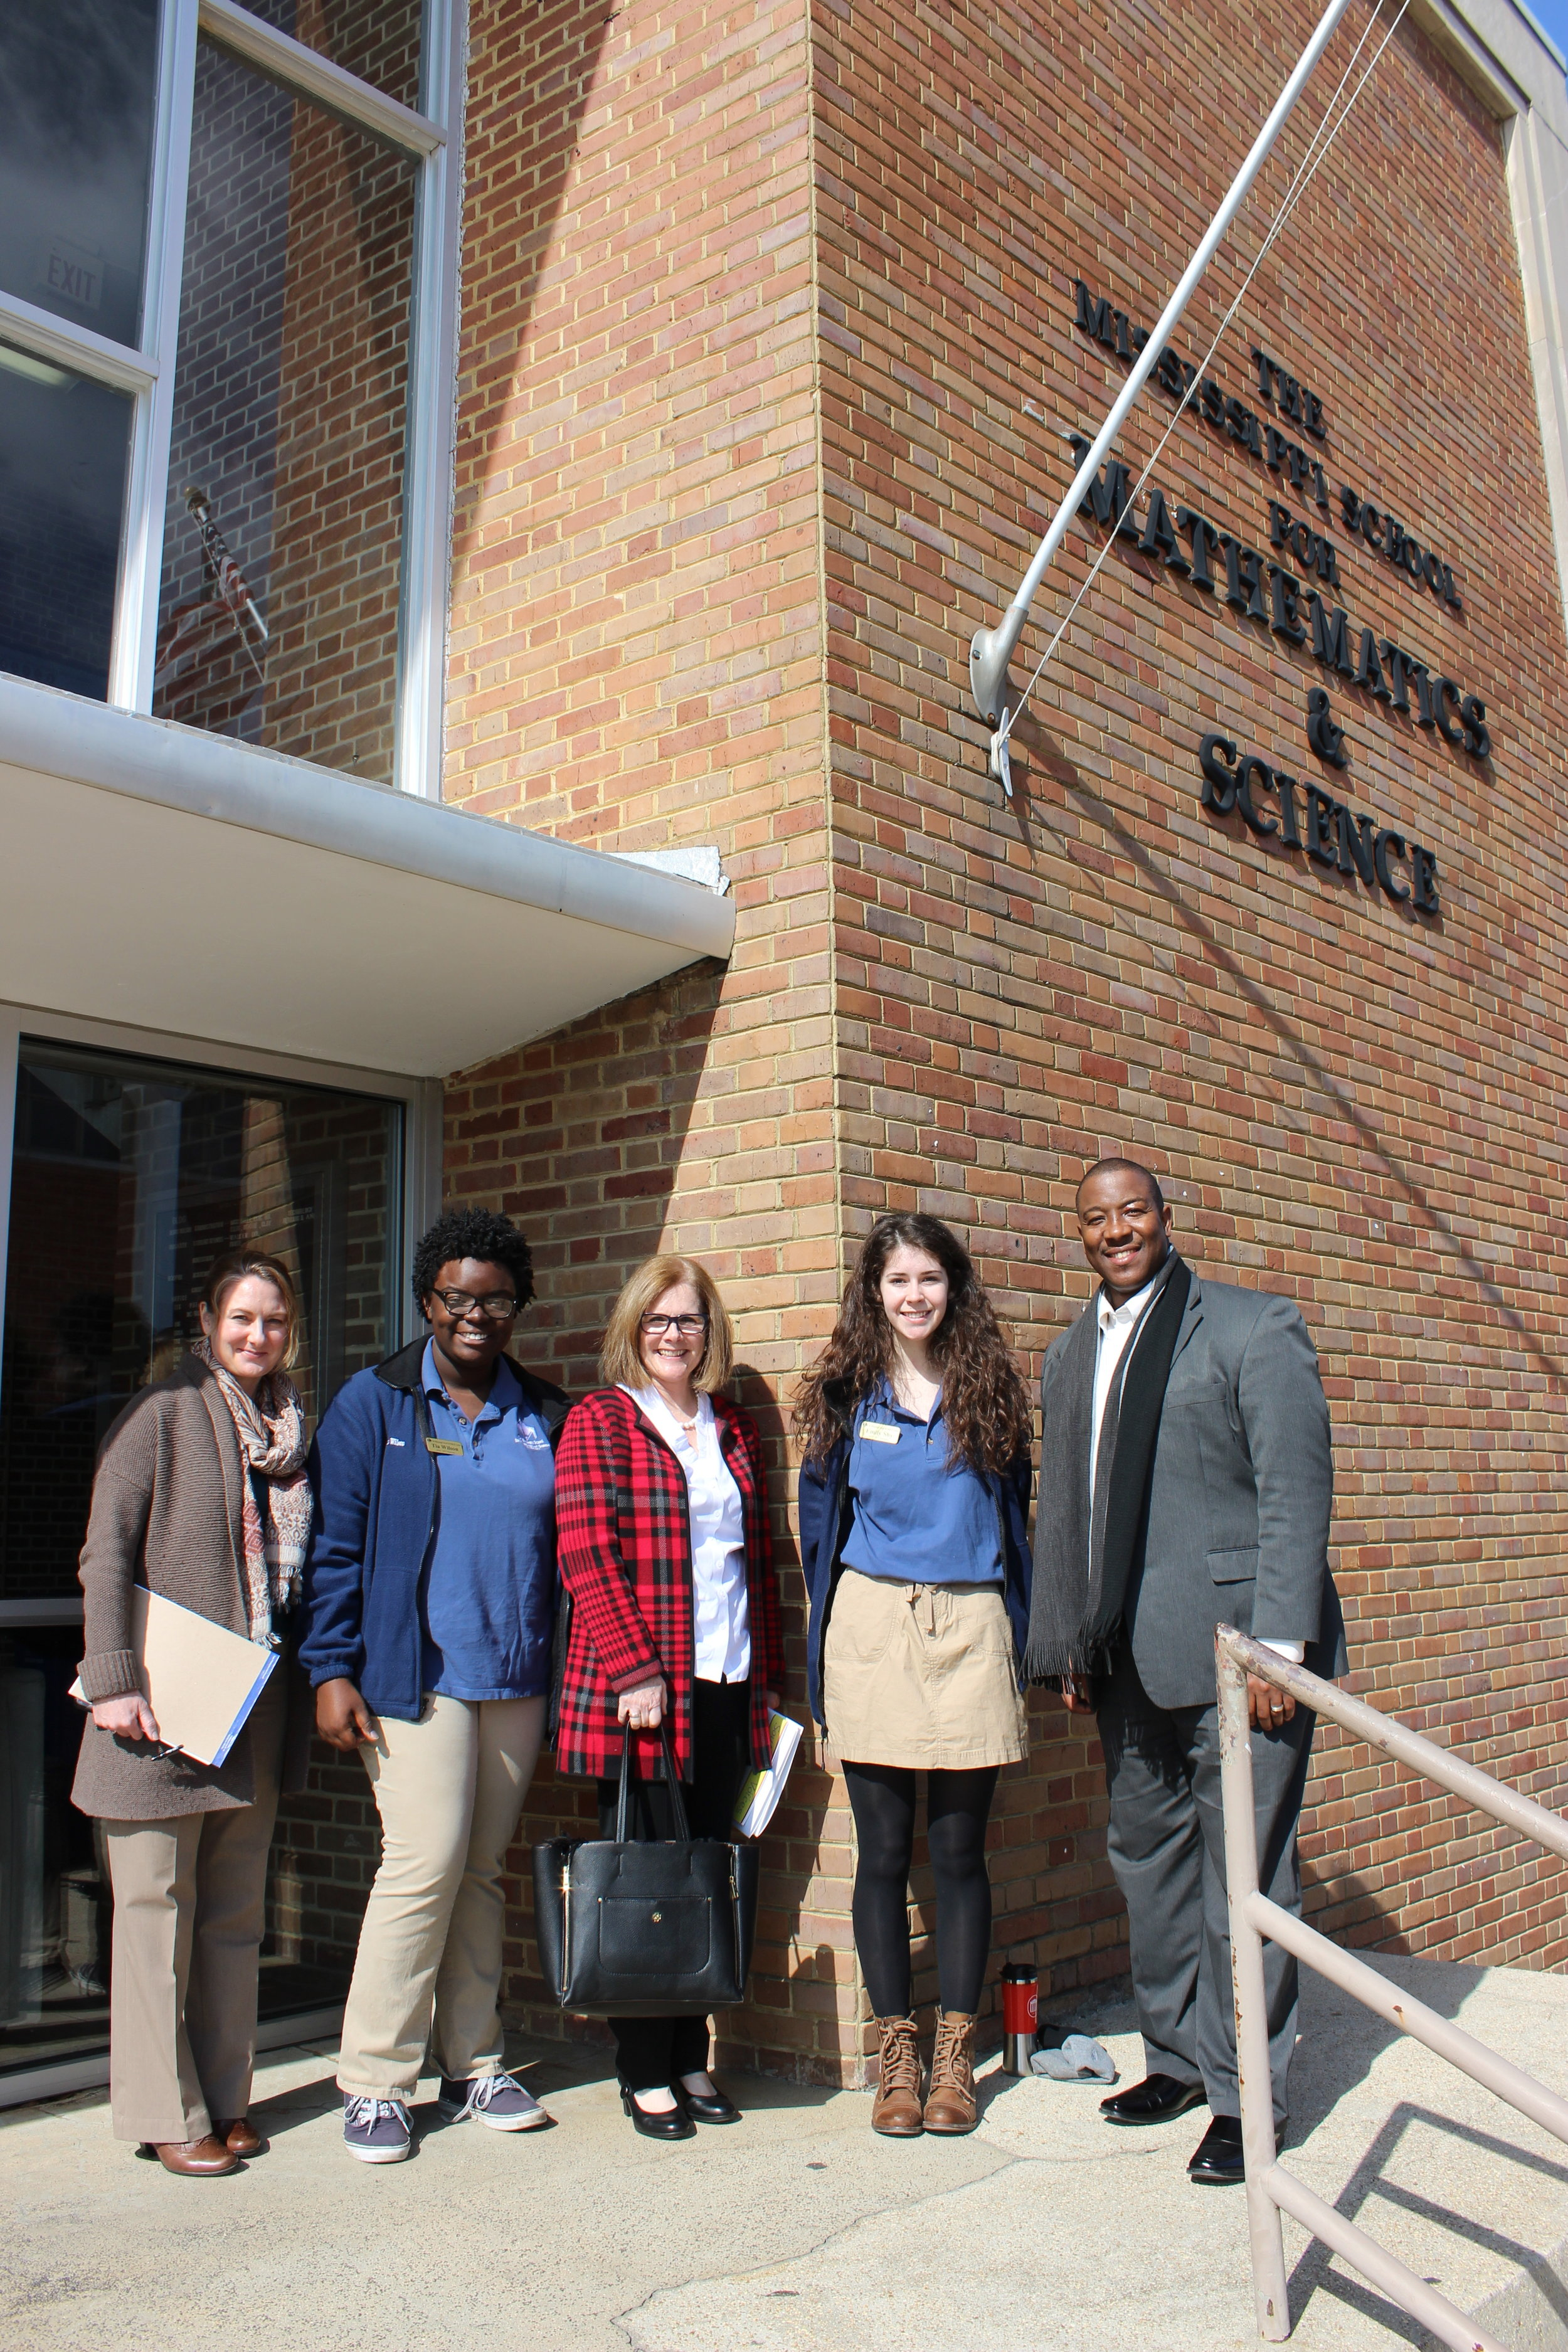 From left: Dr. Heather Hanna, Tia Wilson, Kim Richardson, Emily Shy, and Dr. Germain McConnell.